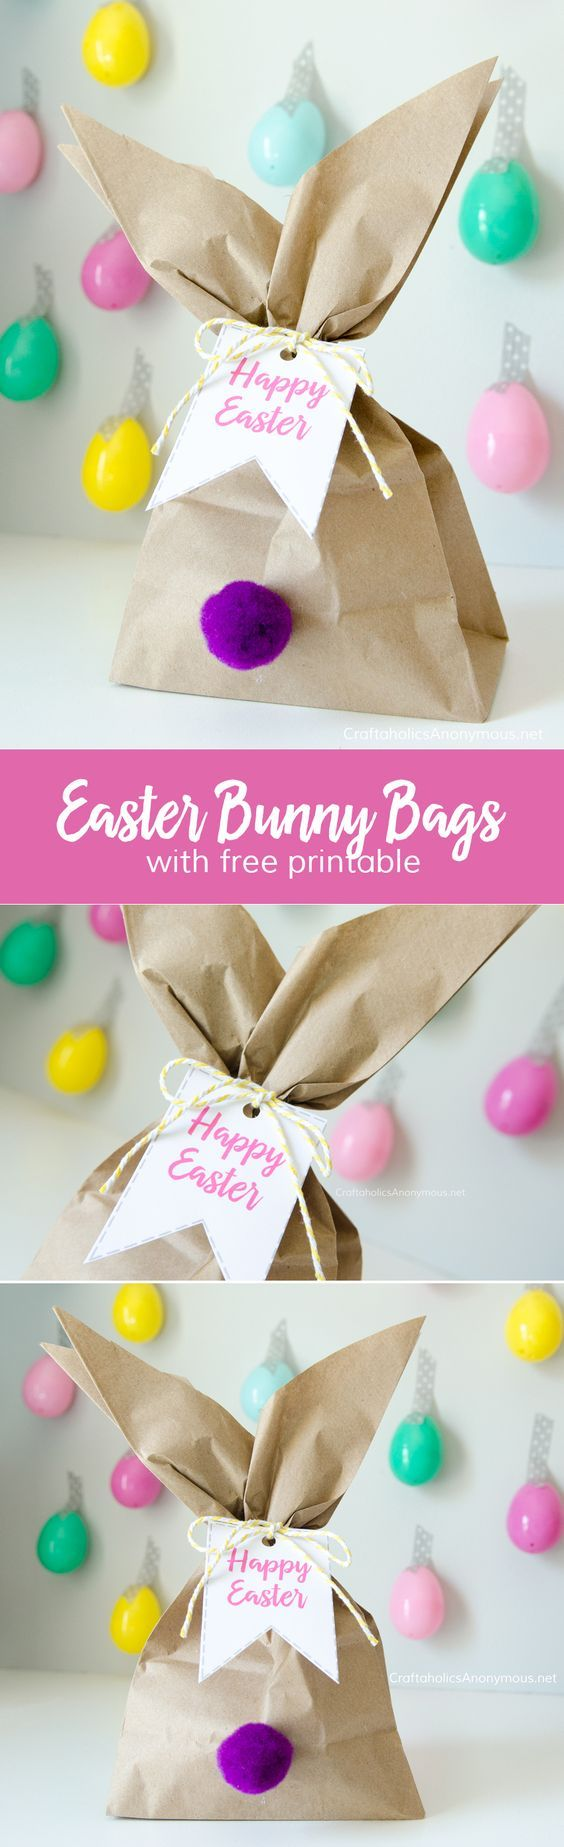 Easy easter bunny gift bags idea make great favors gifts easy easter bunny gift bags idea make great favors gifts decor negle Image collections